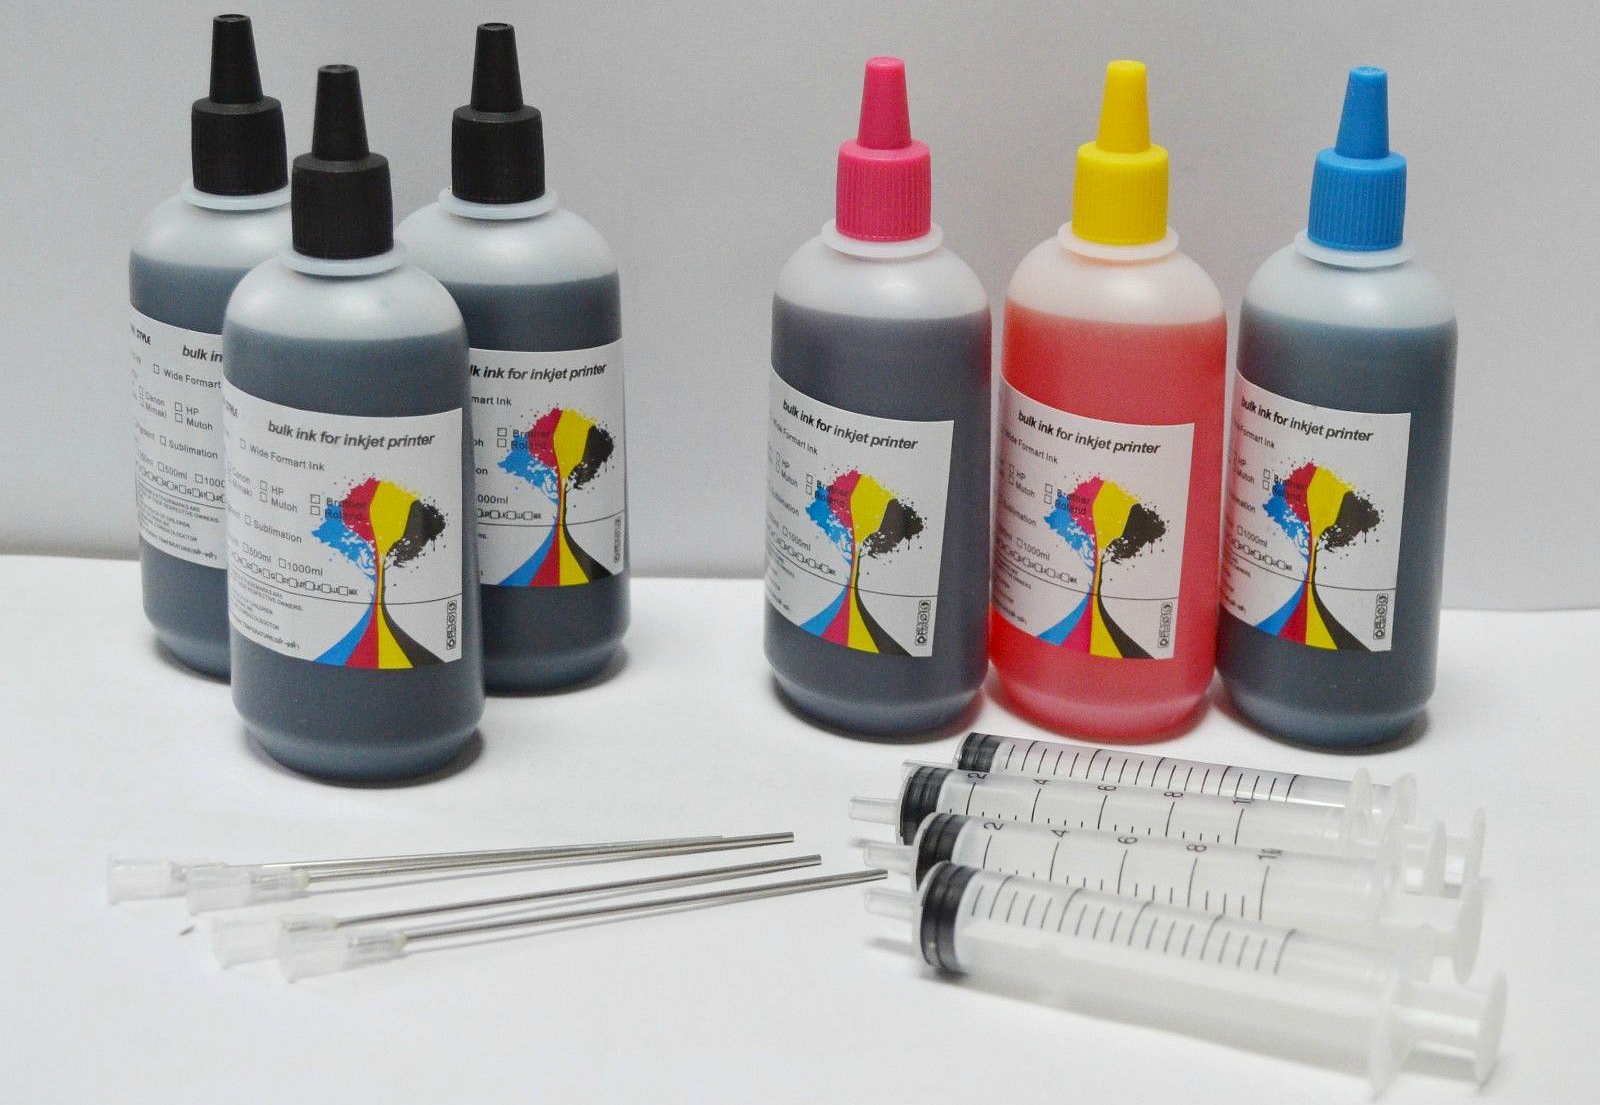 10 ways to save big on printer ink and toner – Refill your own ink bottles and syringes